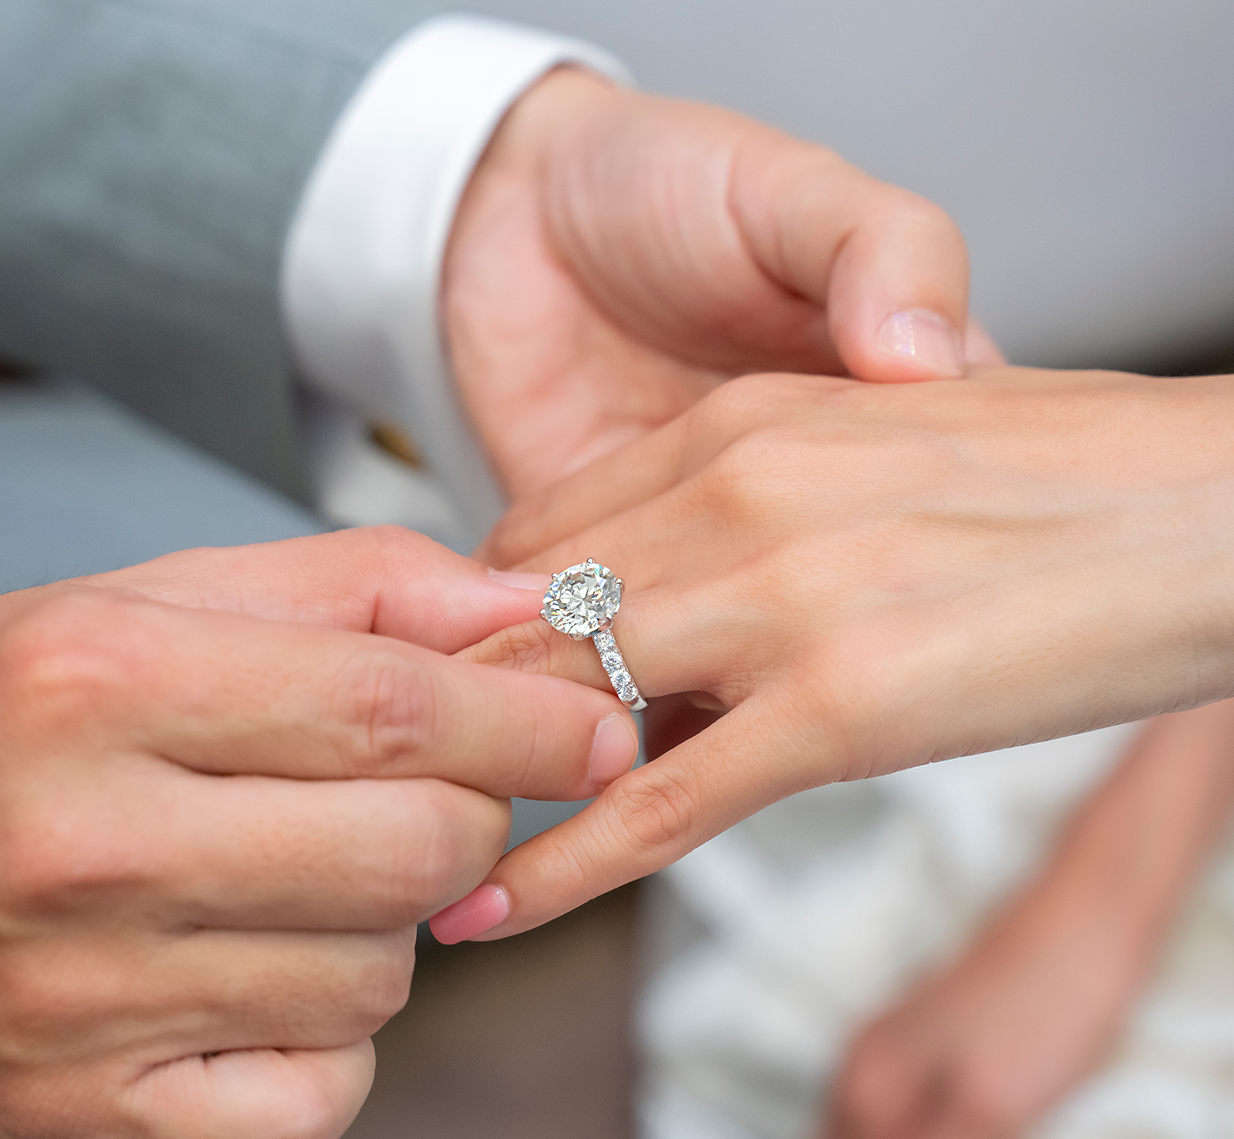 Close-up of diamond engagement ring design and diamond mounting on the wedding day